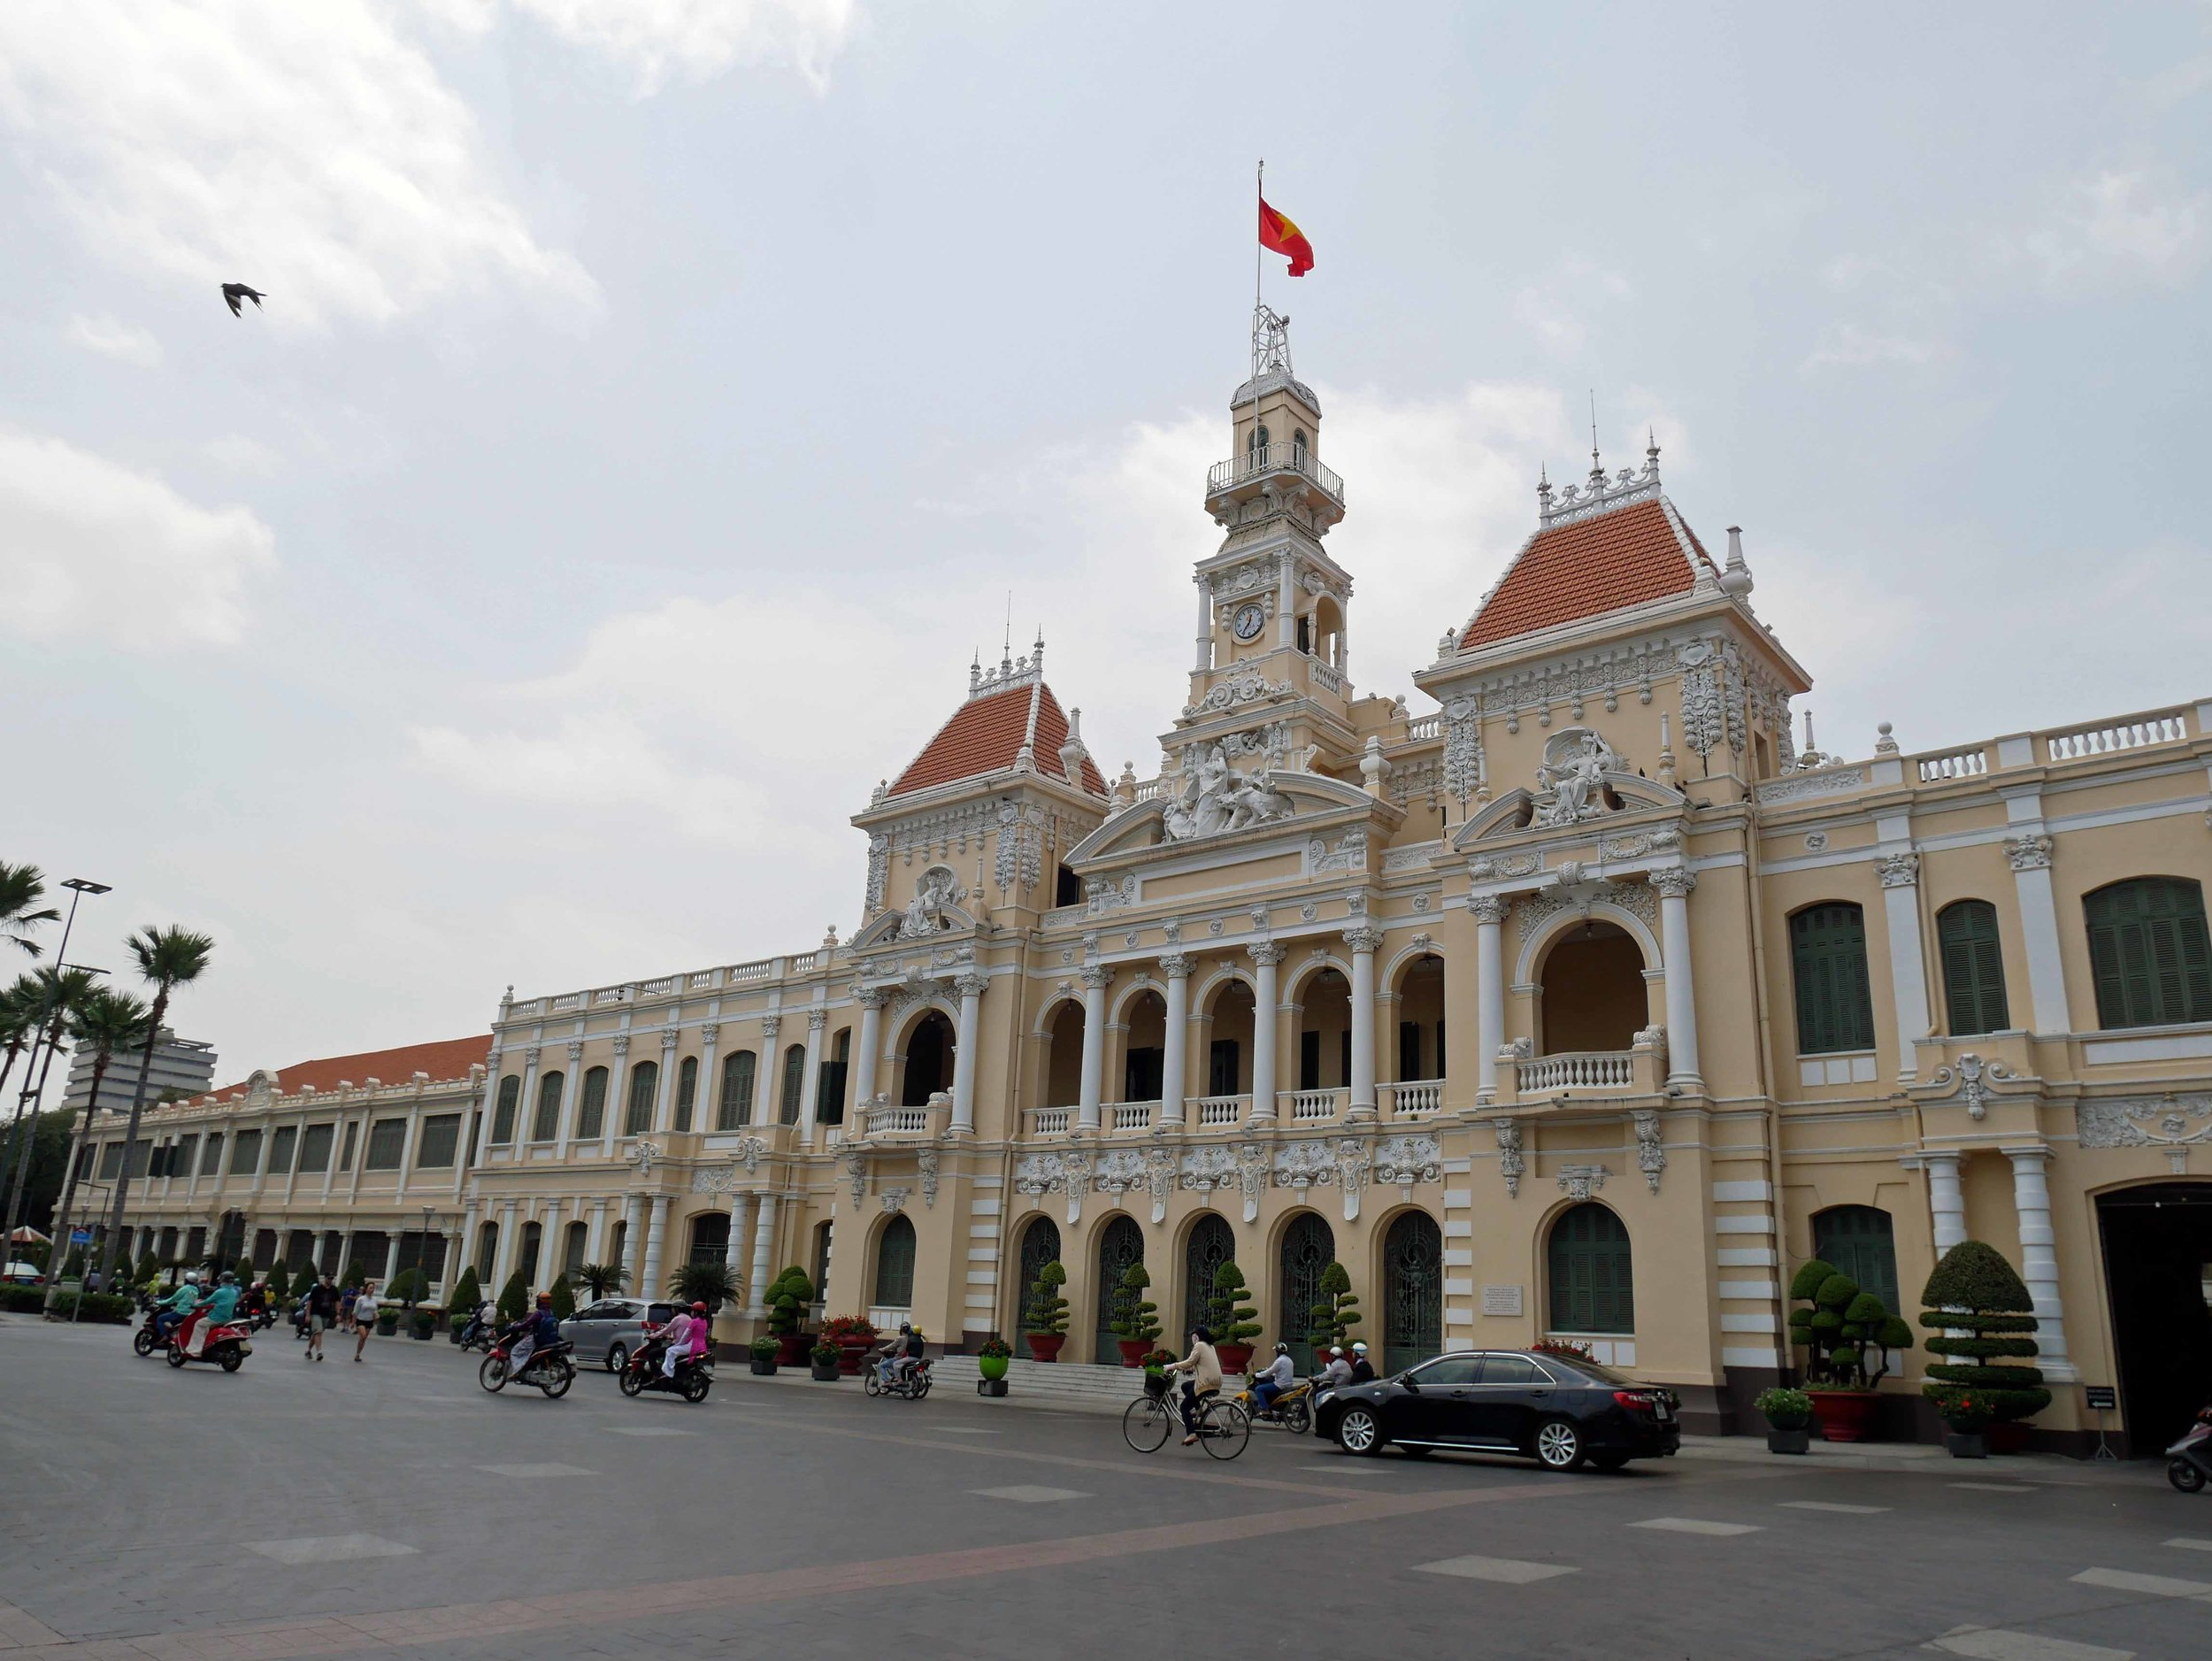 We took a short walk to the Ho Chi Minh City Hall, where a statue of the man himself stands proudly in front.